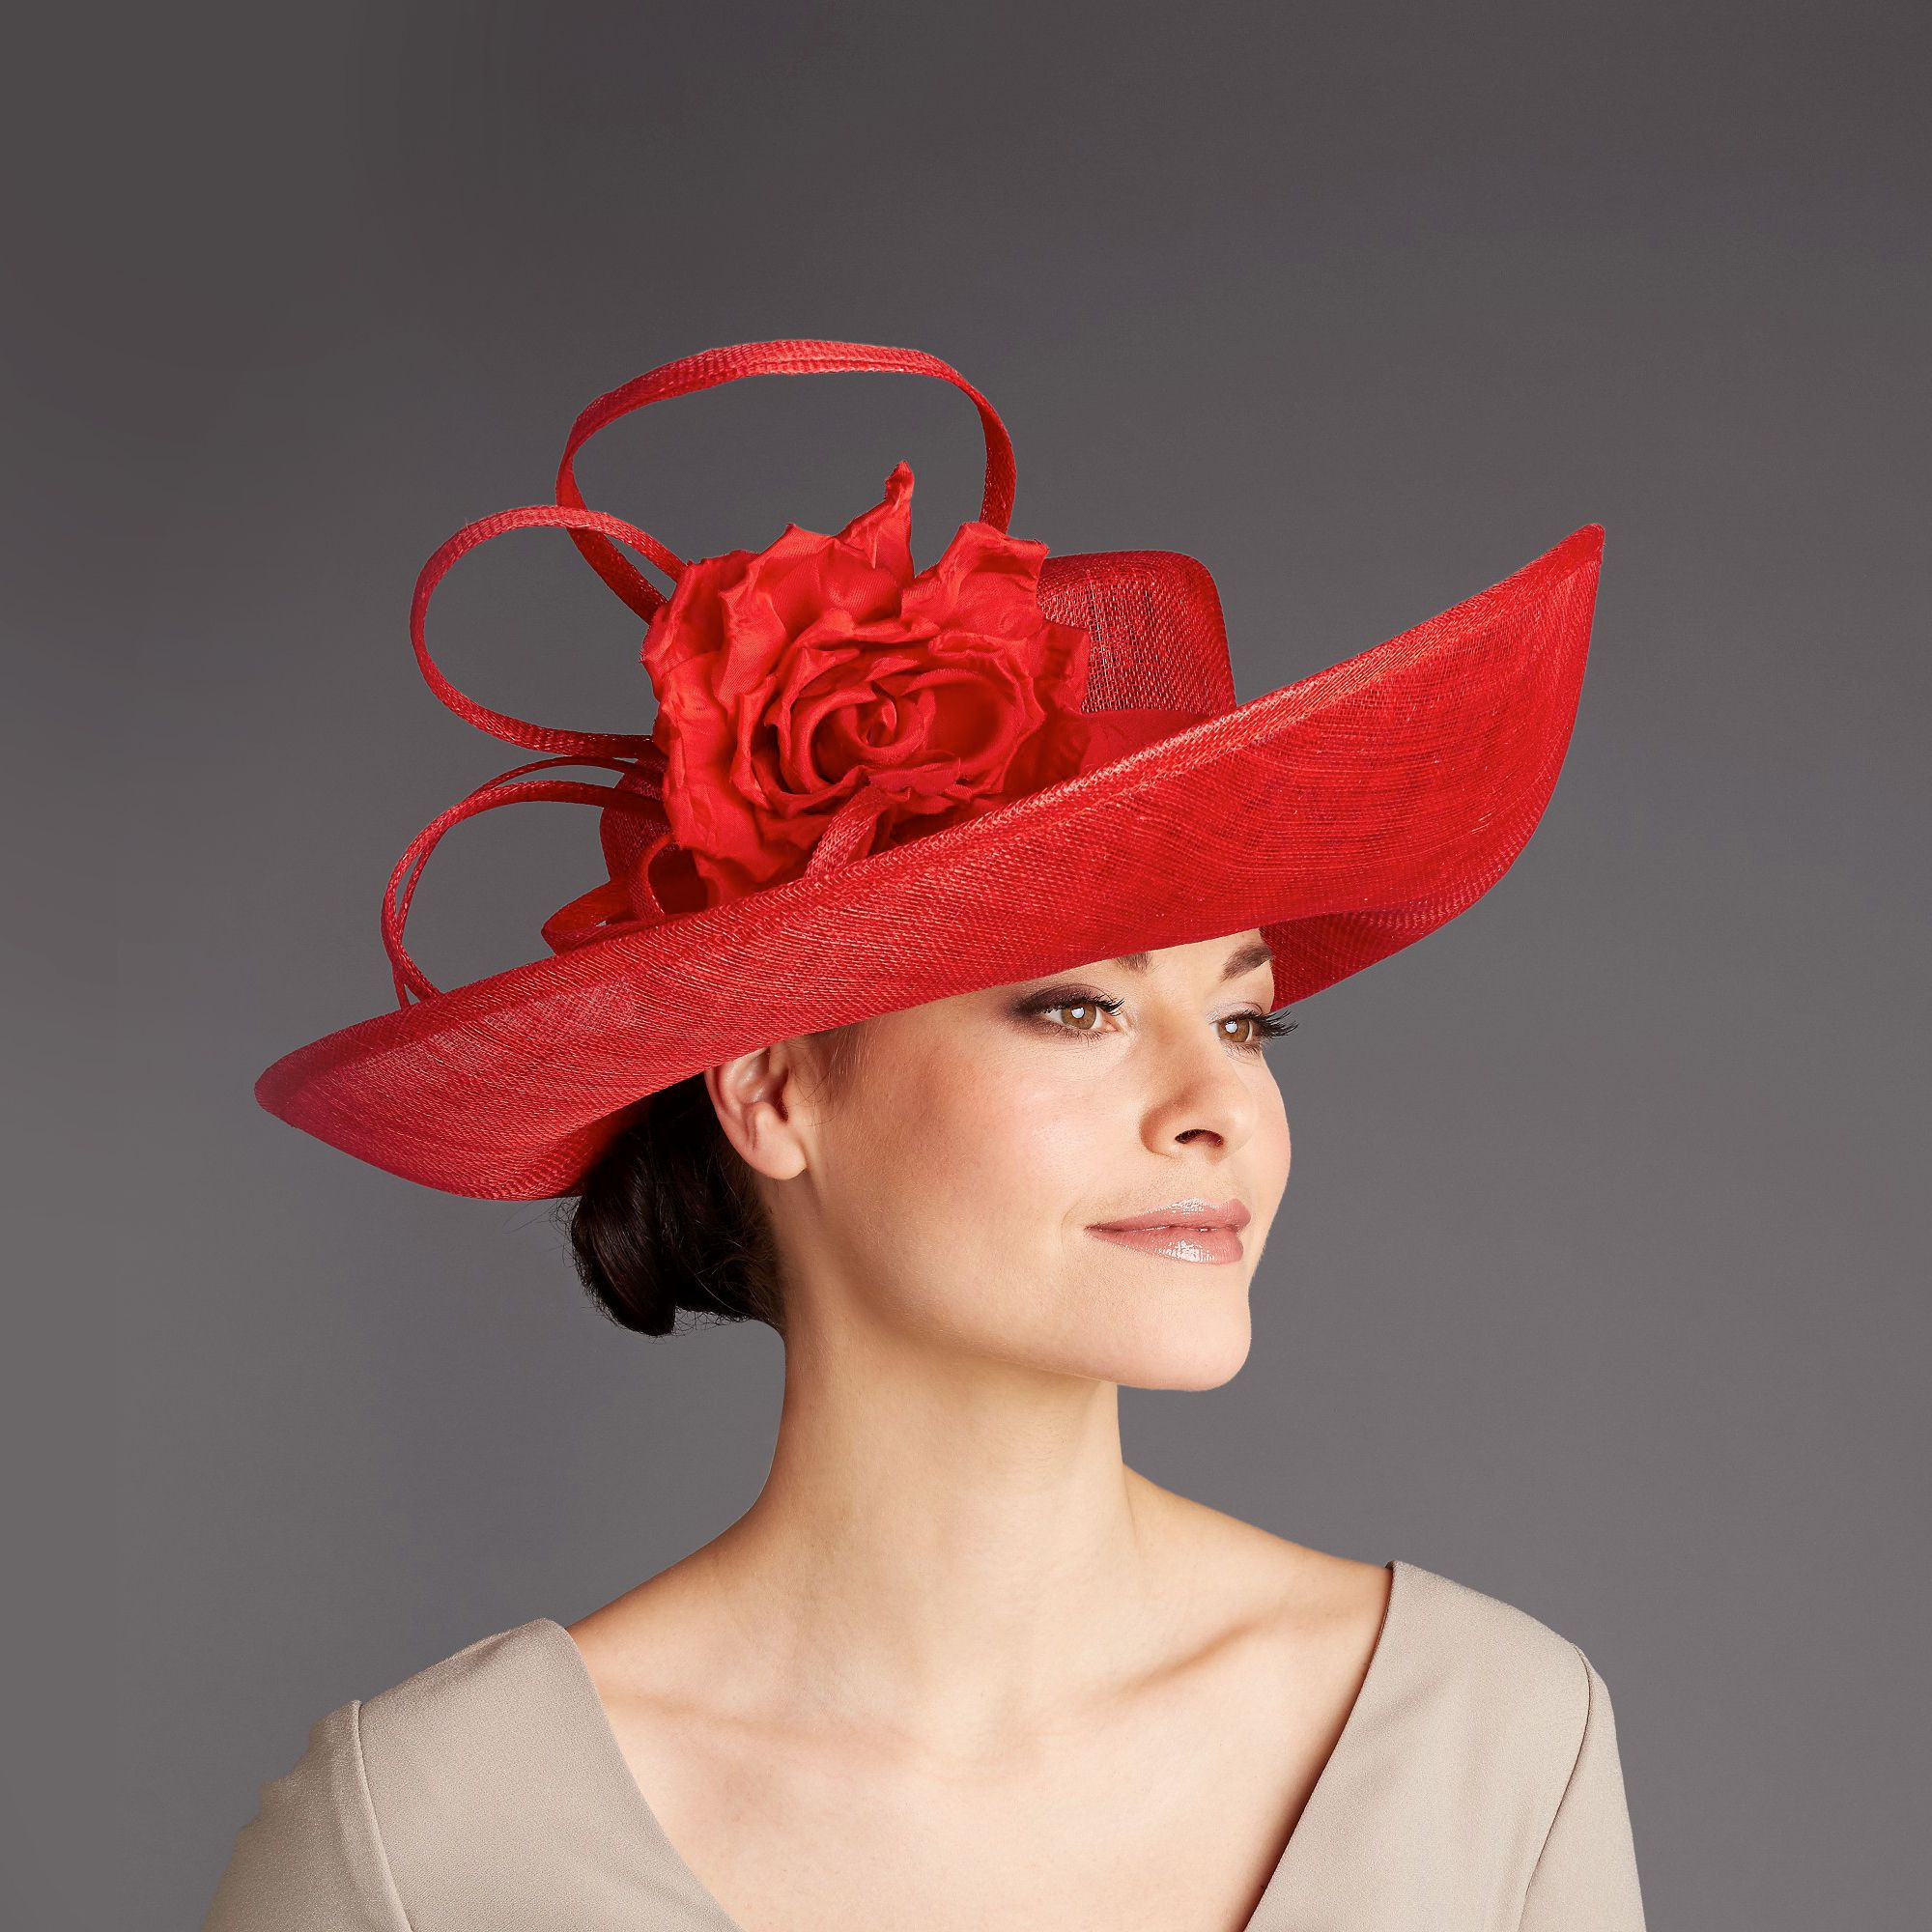 Rachel trevor-morgan red corsage hat